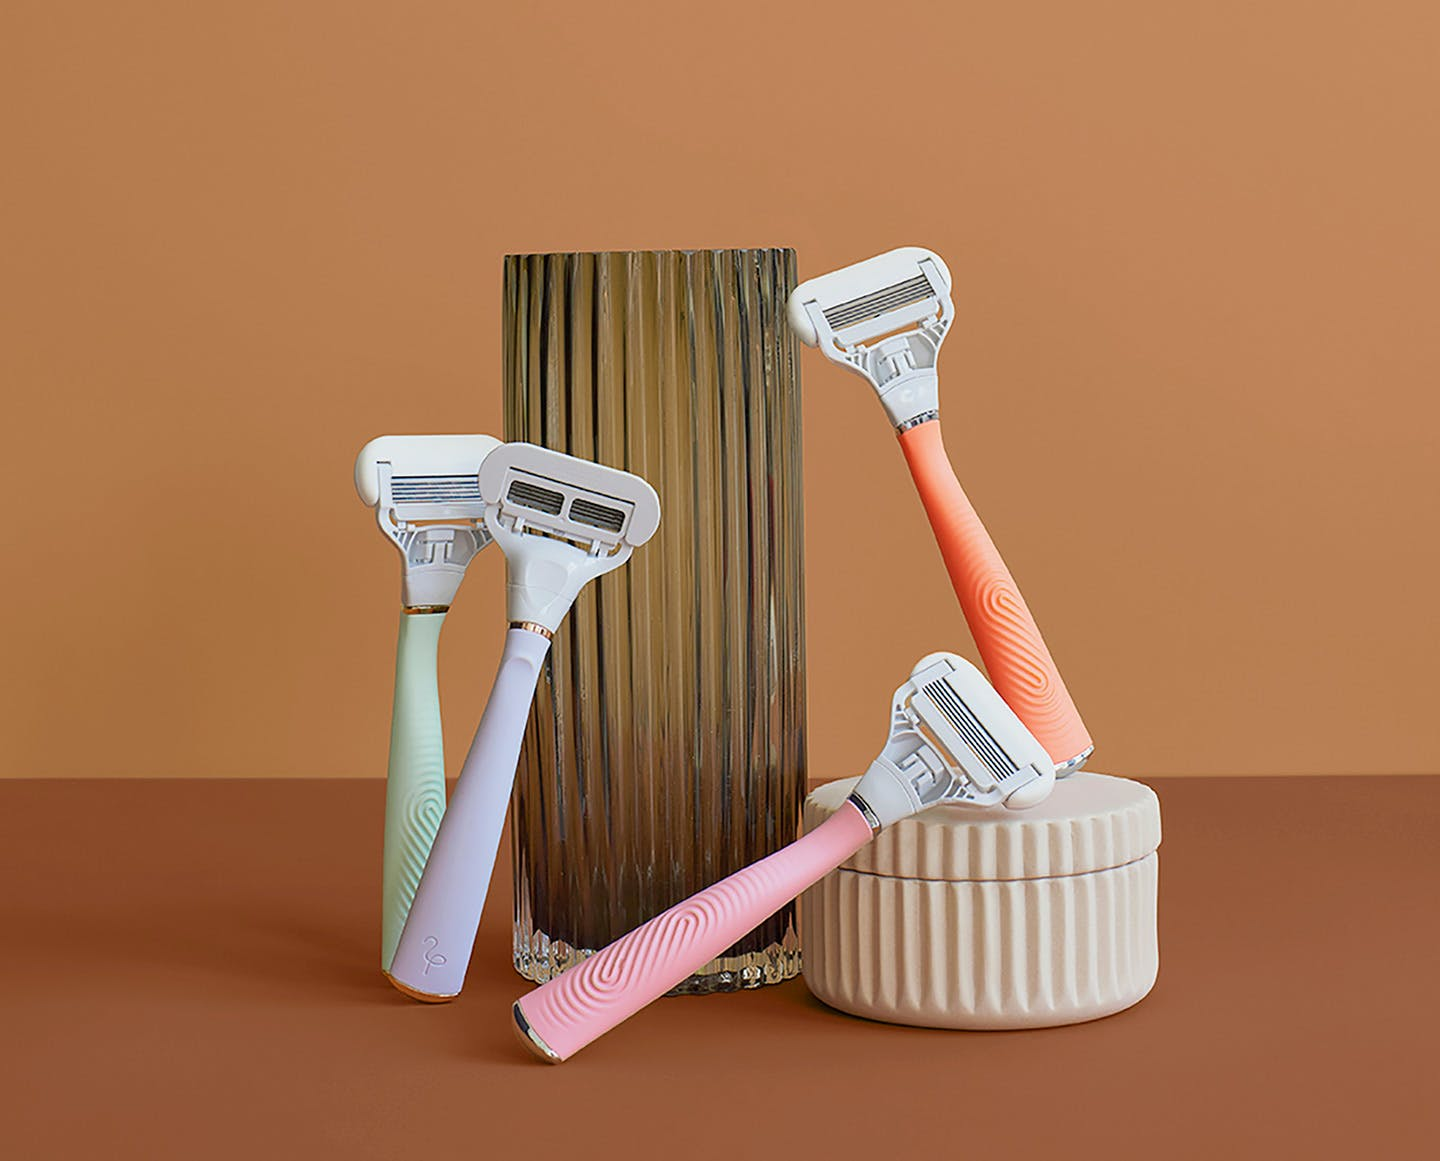 Four razors in different colors stacked